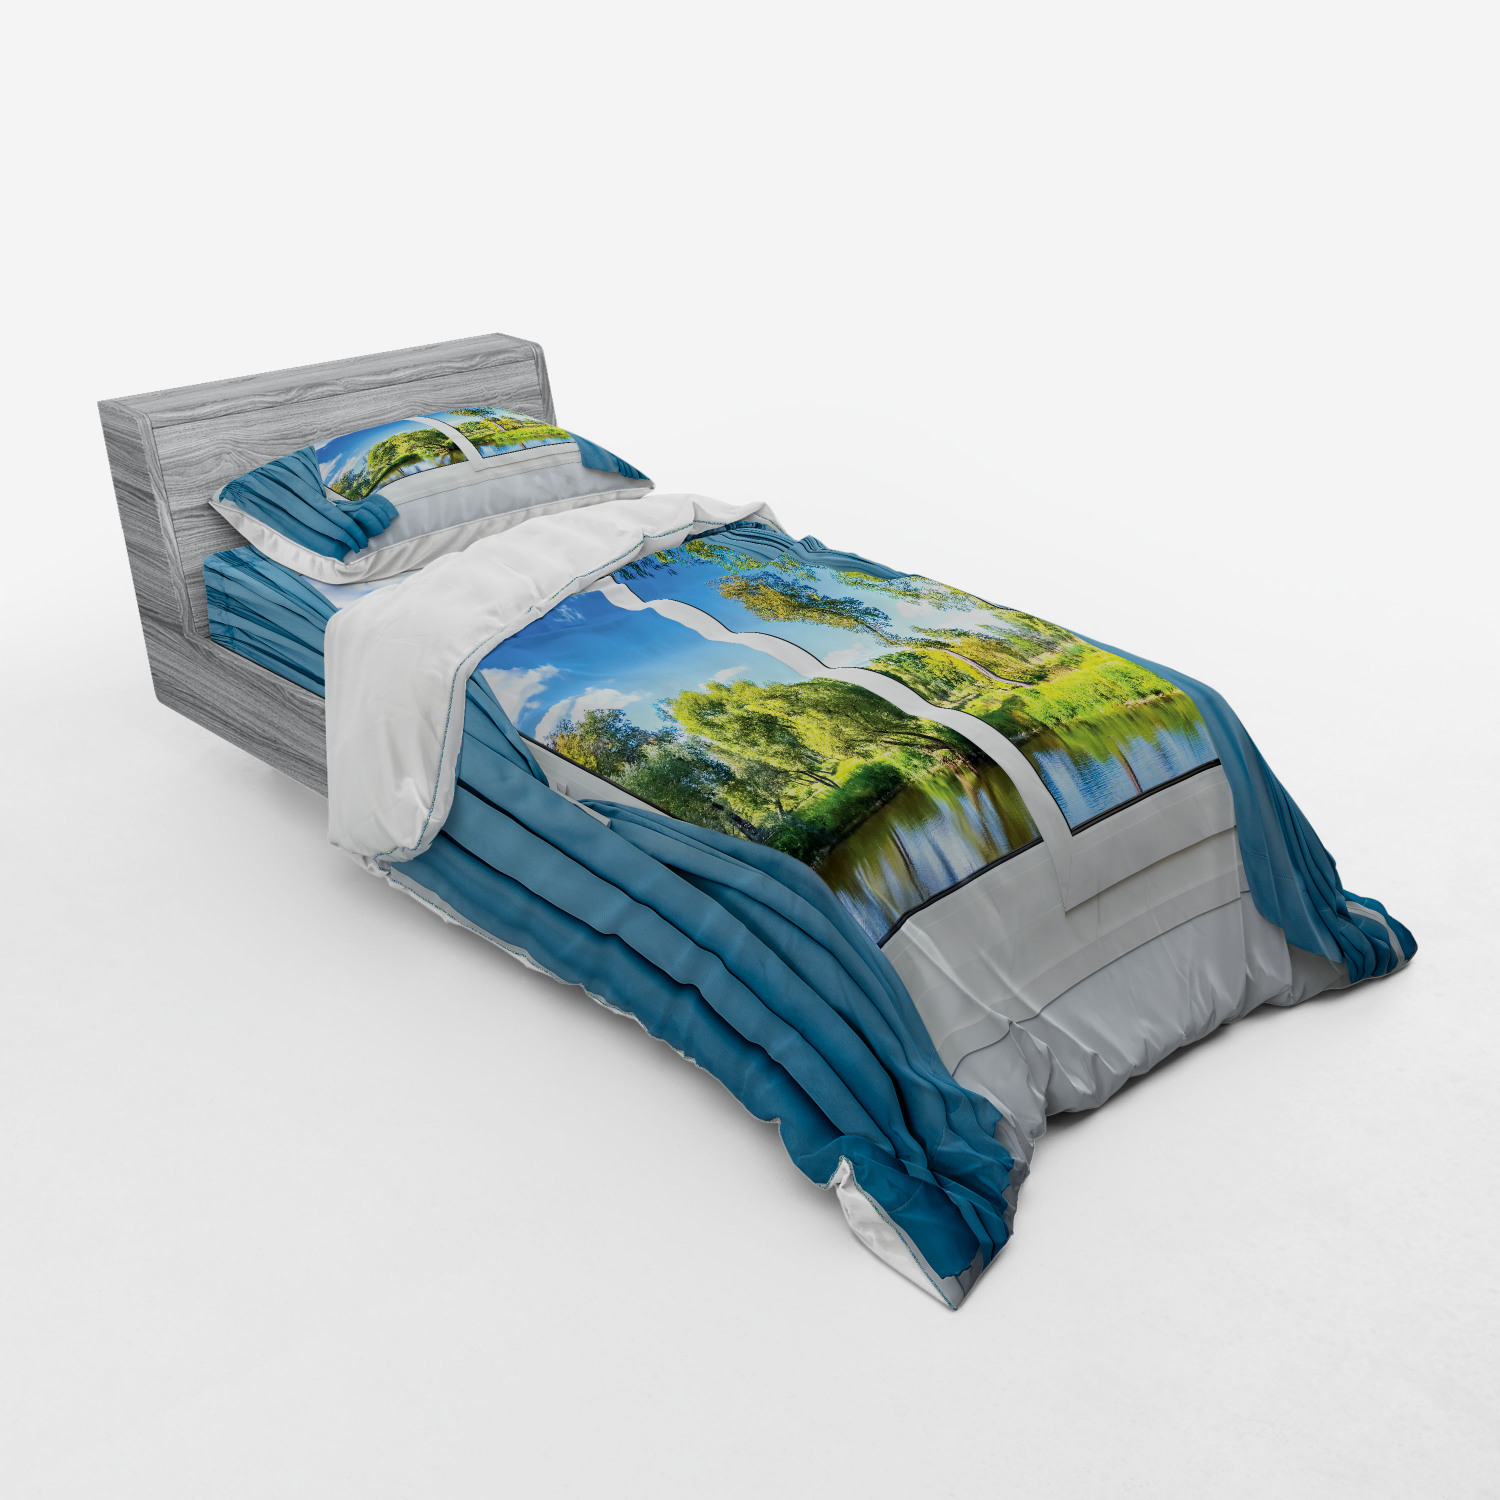 thumbnail 153 - Ambesonne Summer Bedding Set Duvet Cover Sham Fitted Sheet in 3 Sizes